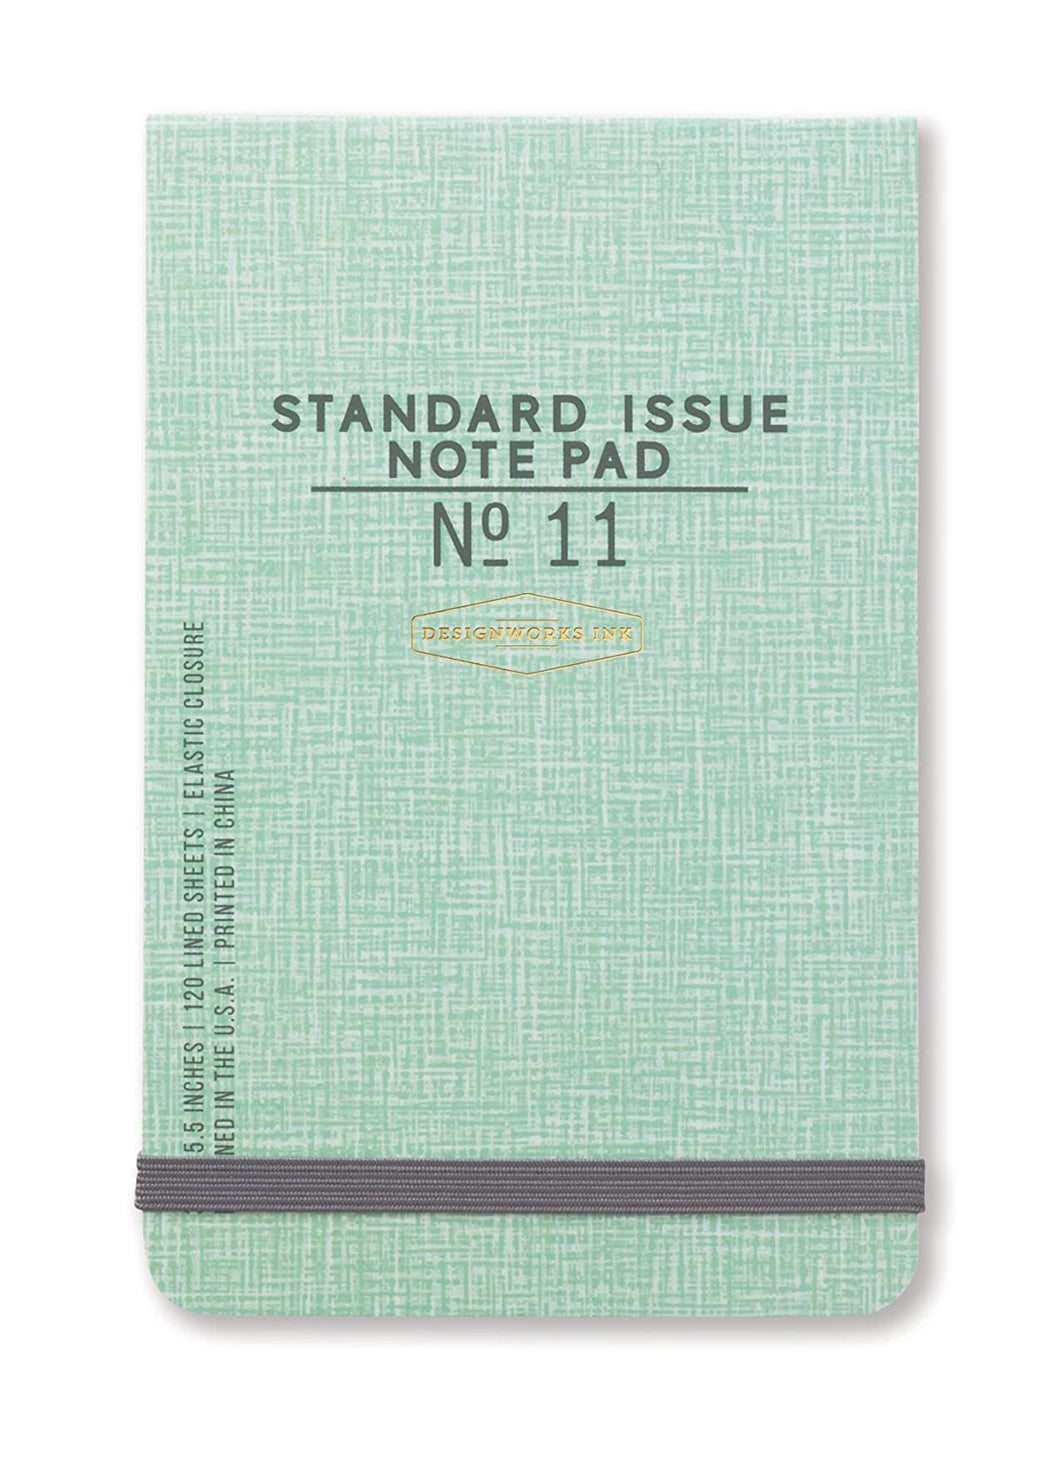 Green Standard Issue Note Pad No. 7